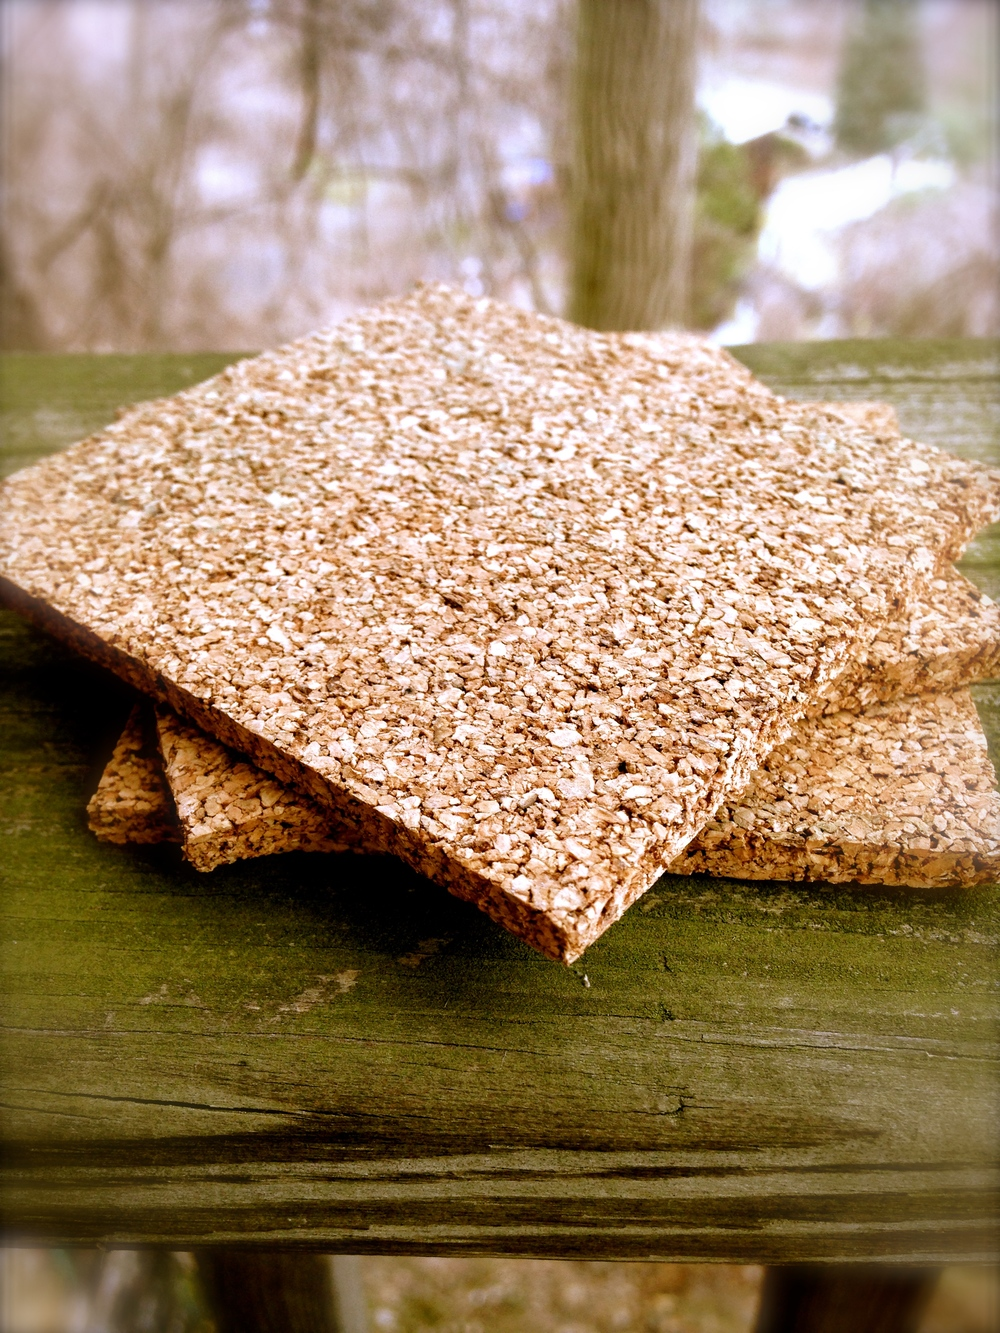 Coasters, or beermats, made of cork